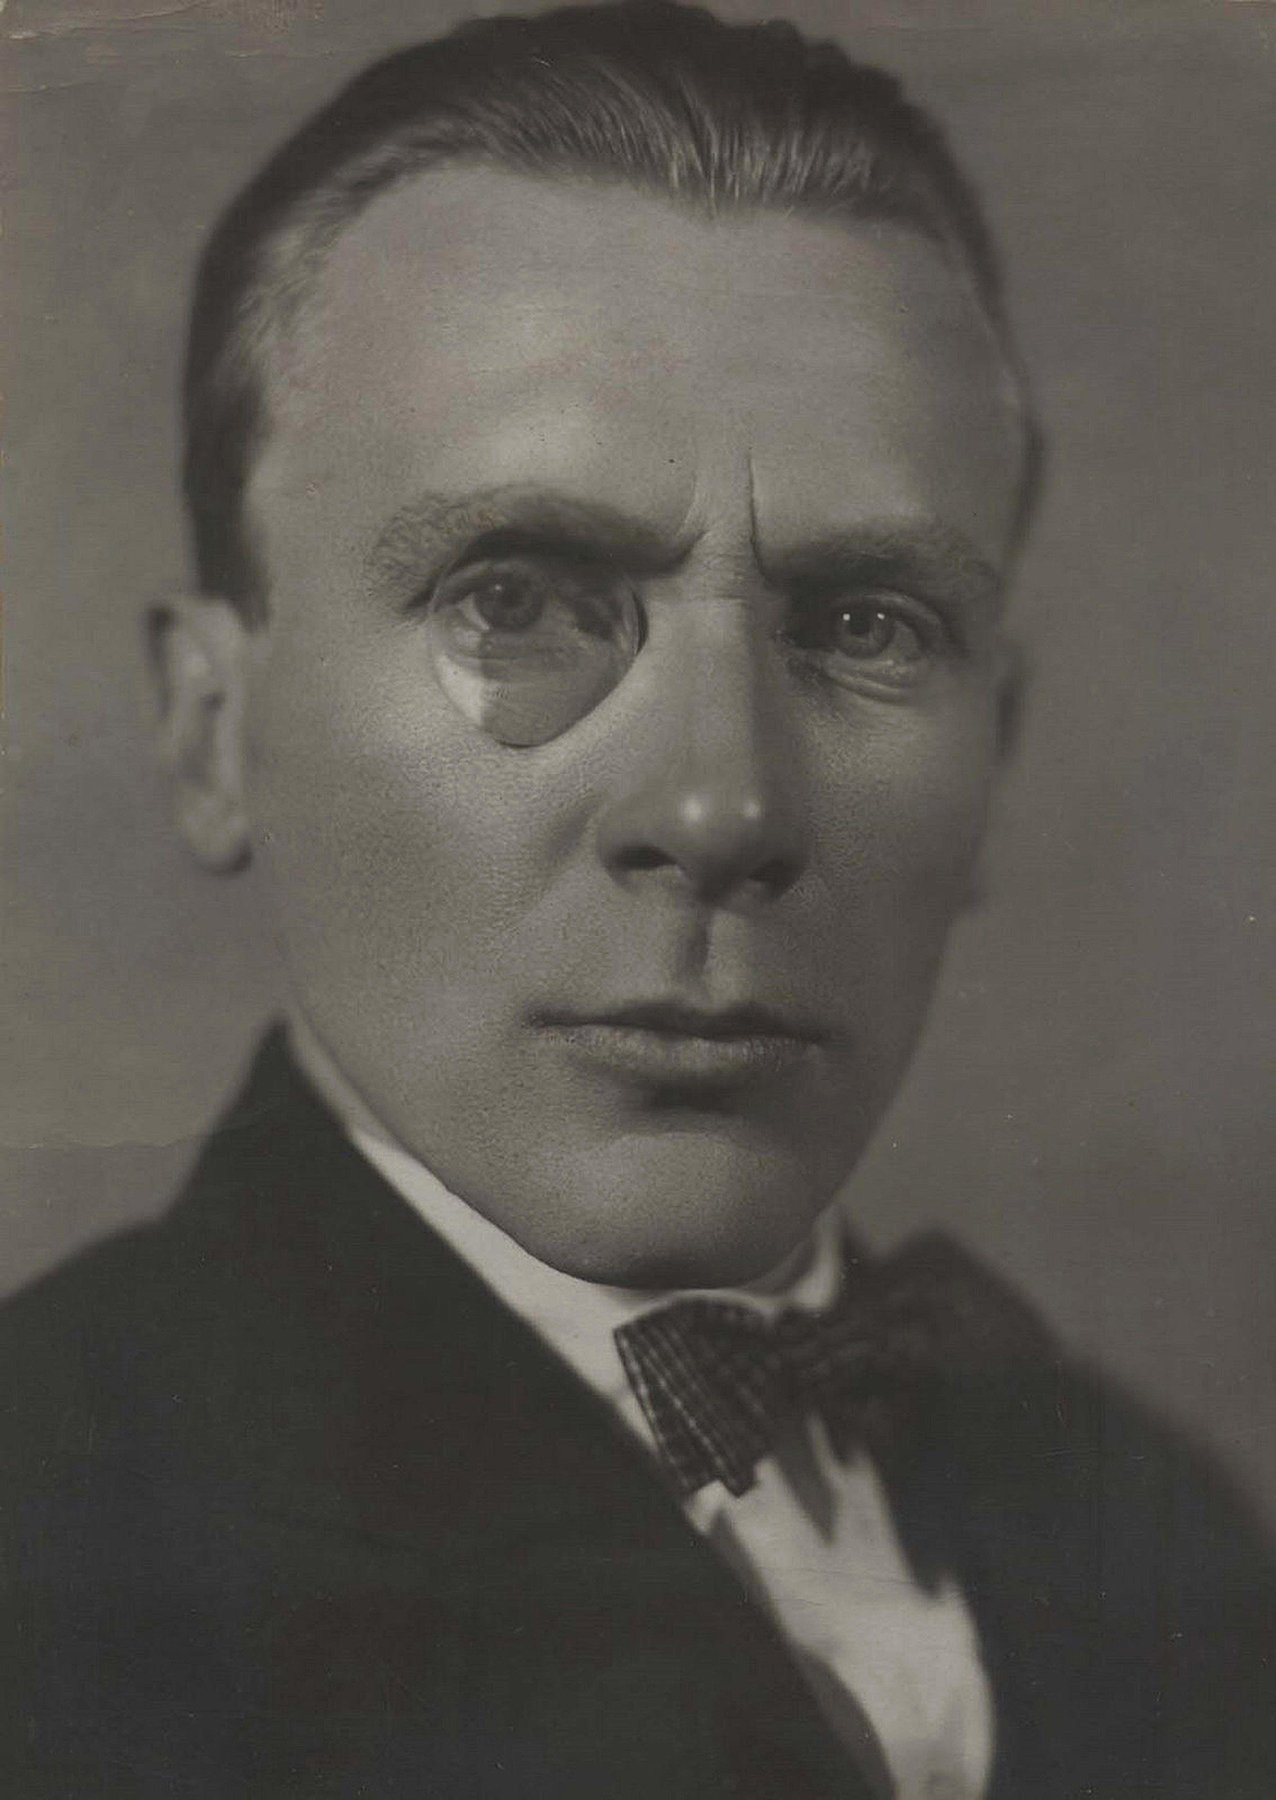 Portrait of Bulgakov with monocle and slicked hair